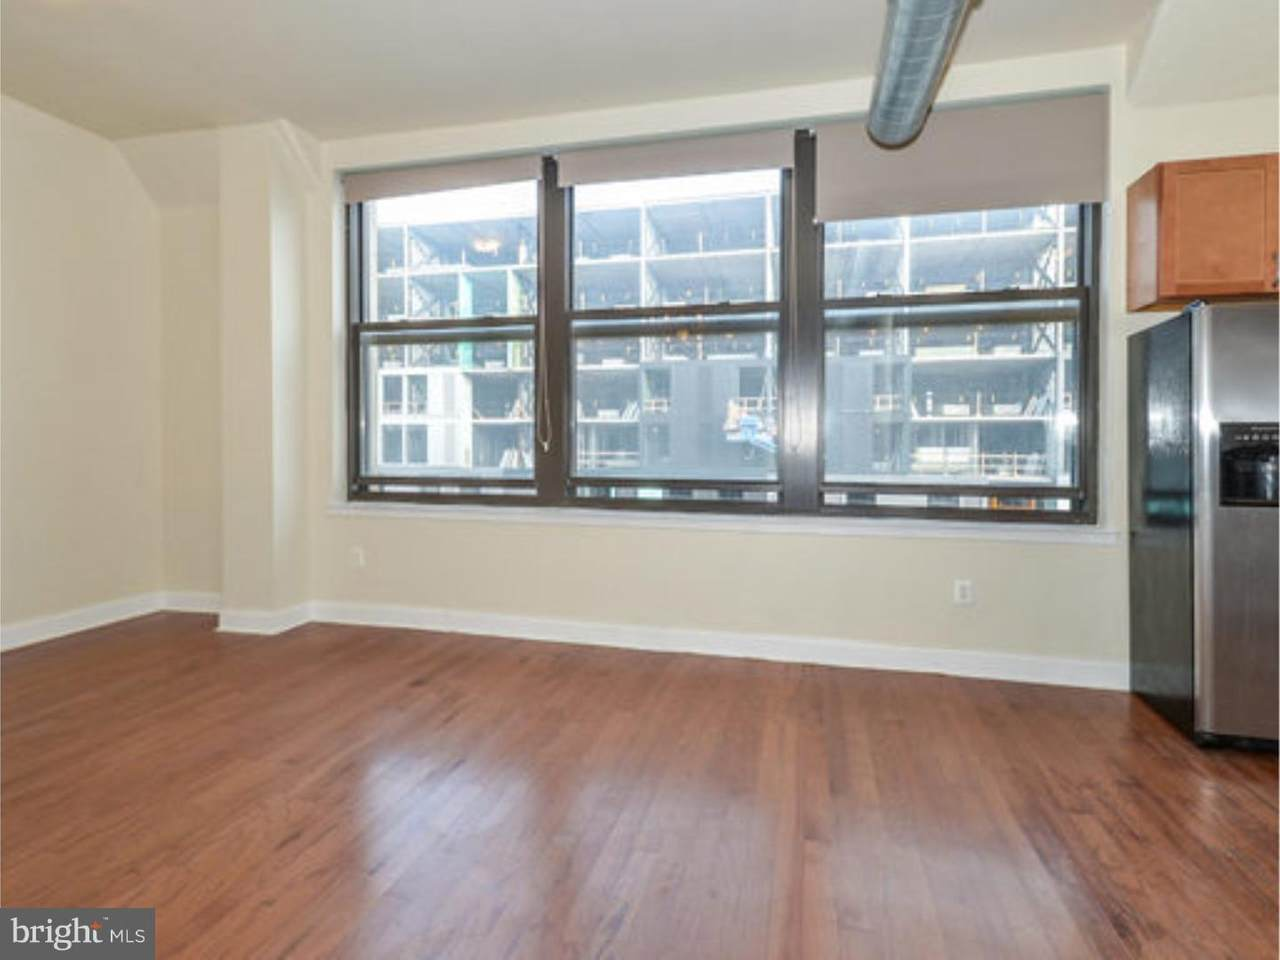 1100 Broad Street - Photo 1